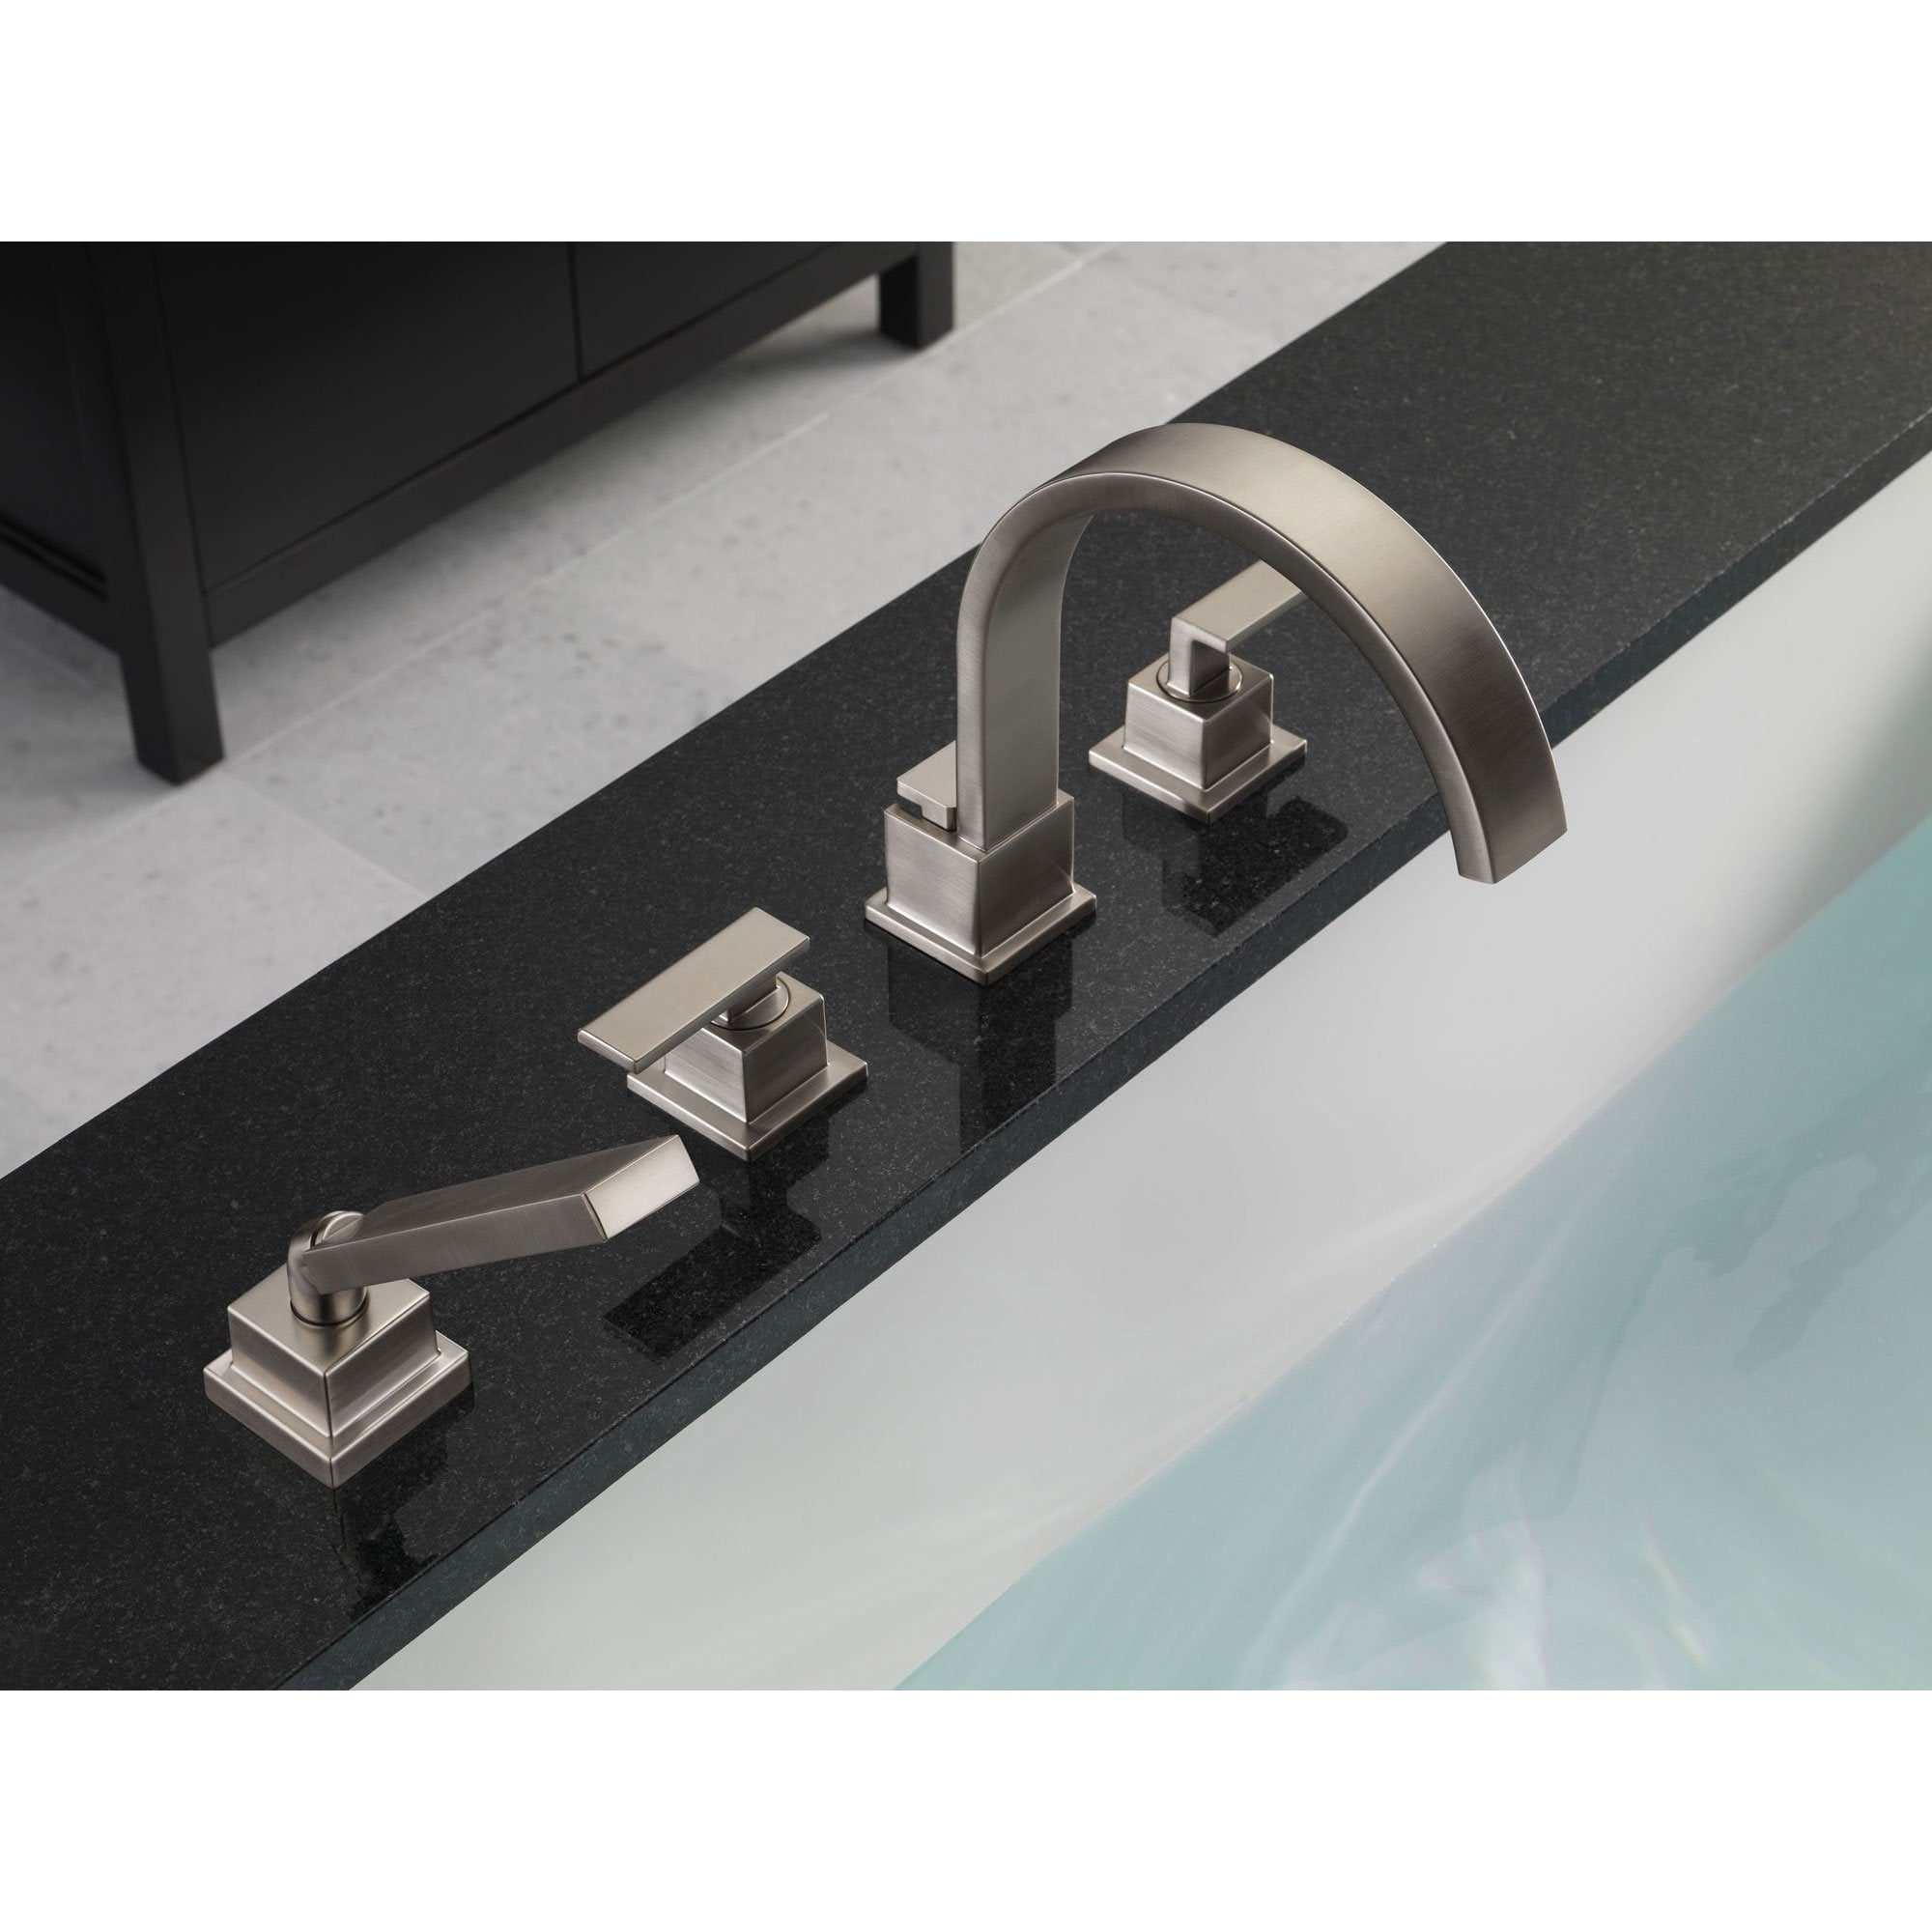 Delta Vero Stainless Steel Finish Roman Tub Faucet with Valve & Hand ...